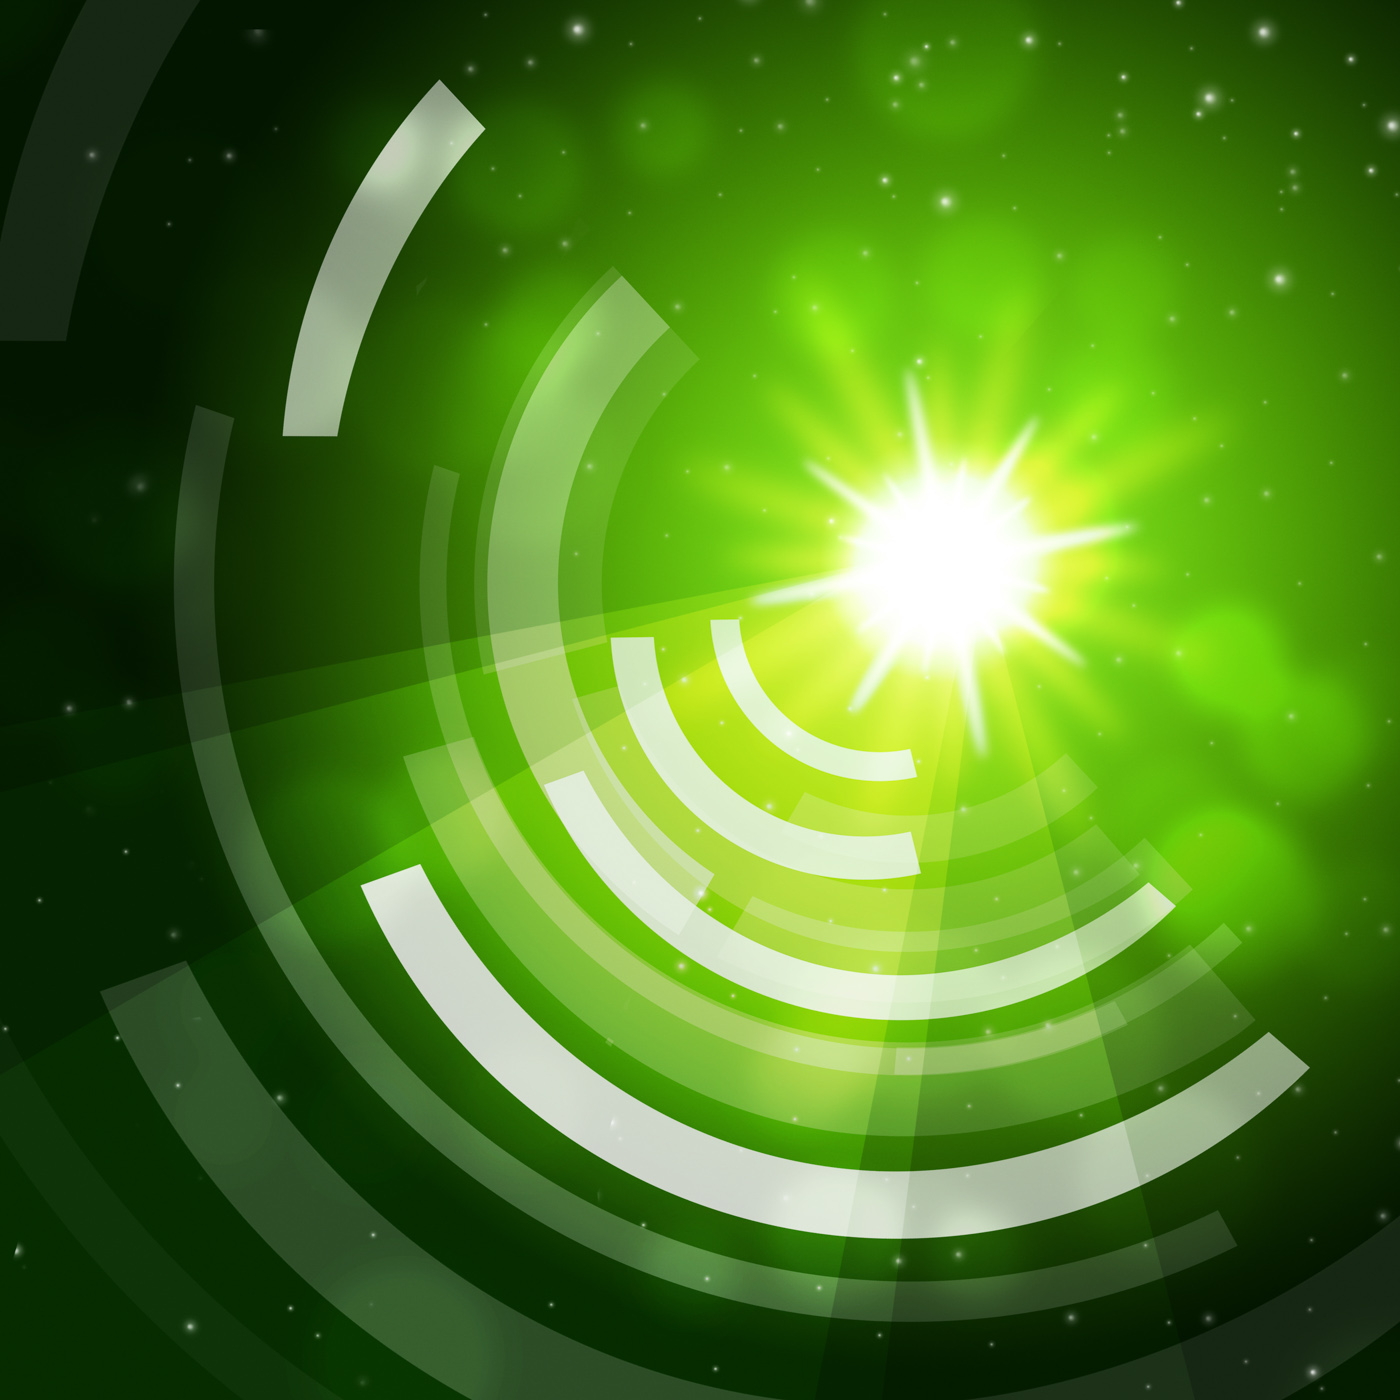 Green Sun Background Means Giving Offf Frequencies, Waves, Radiating, Sun, Star, HQ Photo